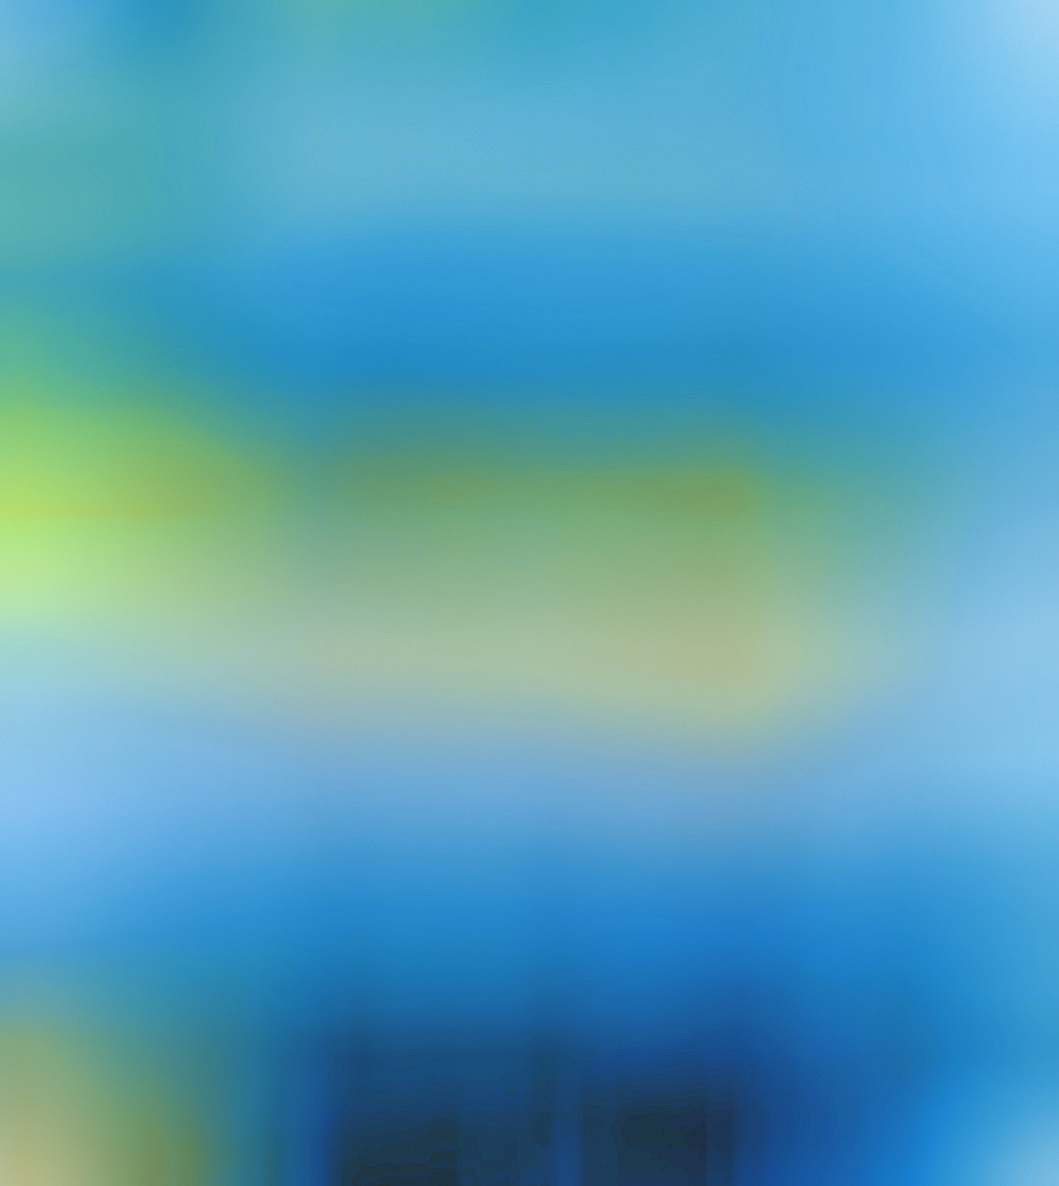 CombiScape6_Painting_30_PhSh_Blur3